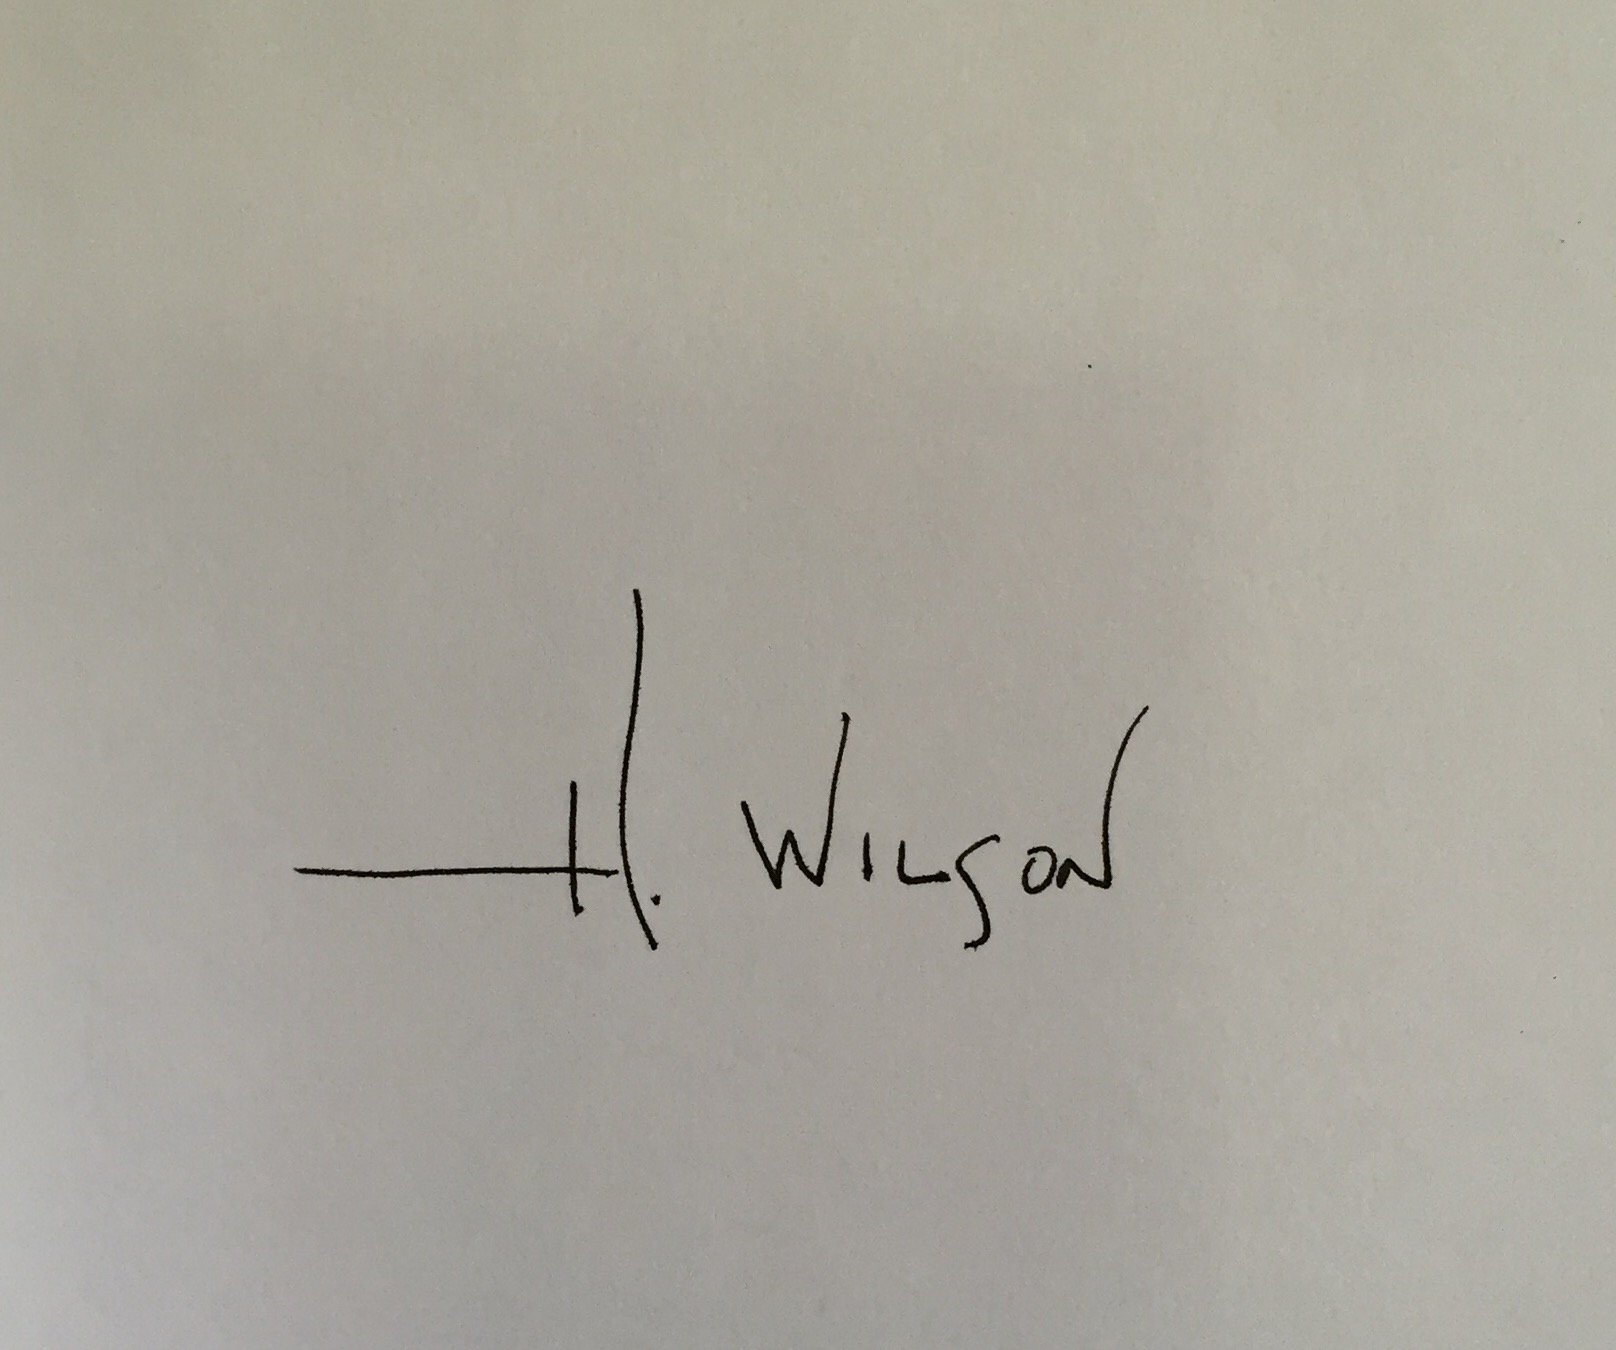 Holly Wilson's Signature